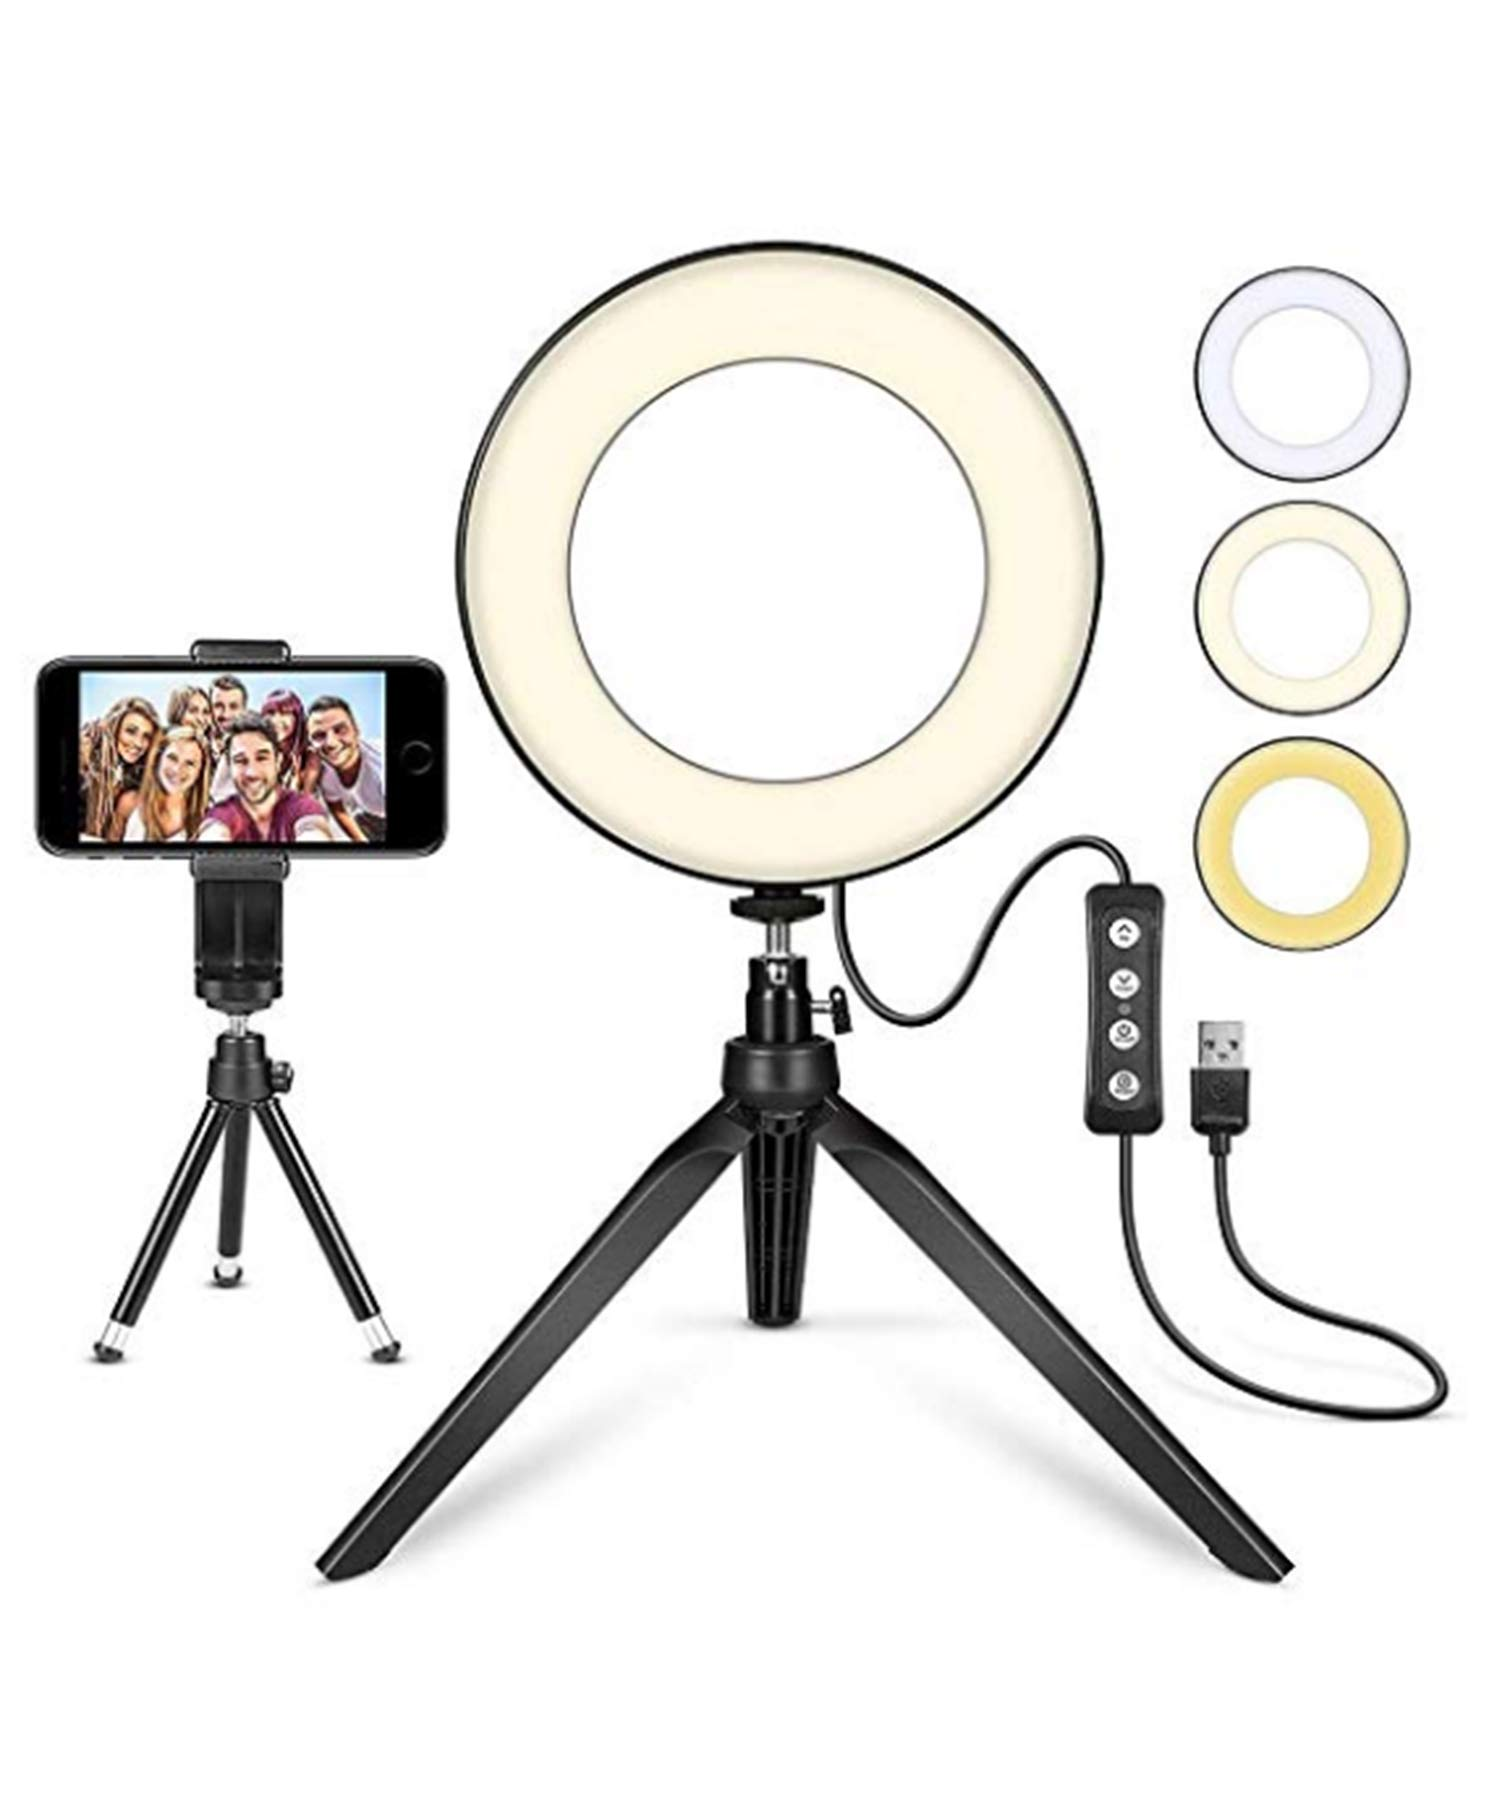 Yirind LED Ring Light 6.3'' with Tripod for YouTube Video and Makeup, Mini LED Camera Light LED Lamp with 3 Light Modes,Fill Light+Desktop Stand